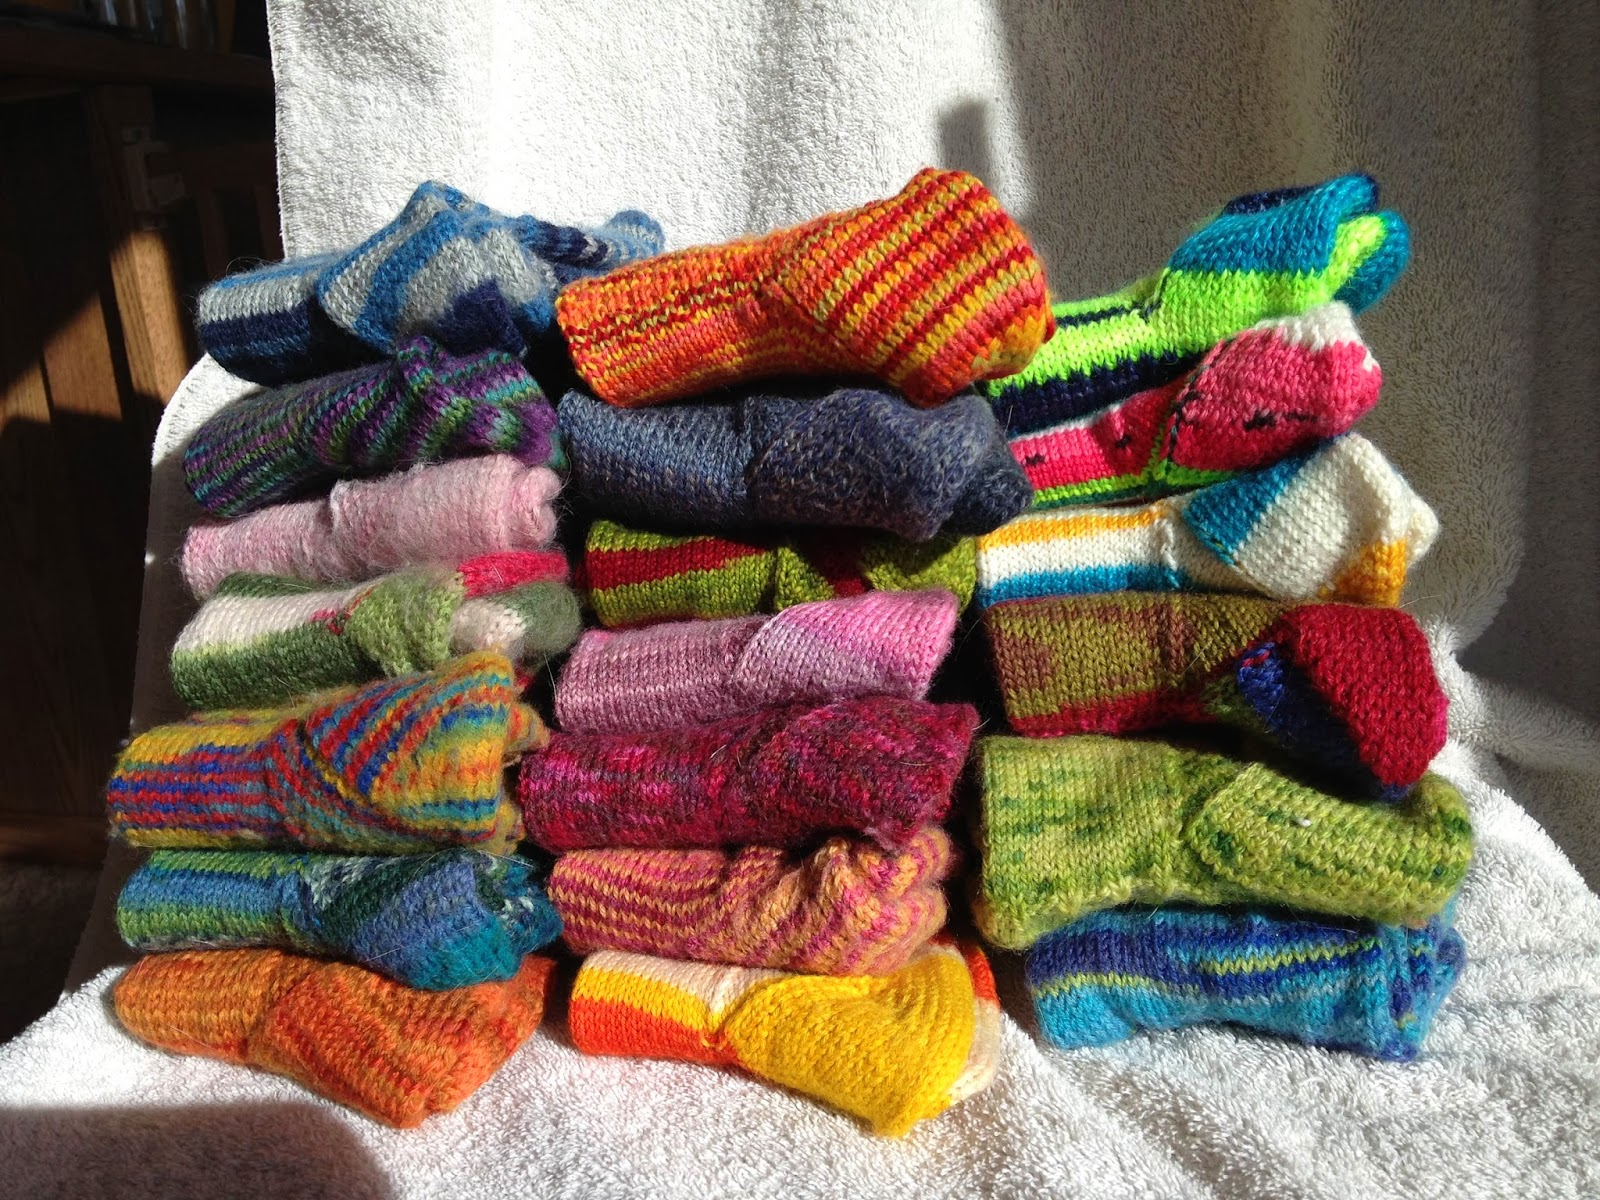 knitting piles